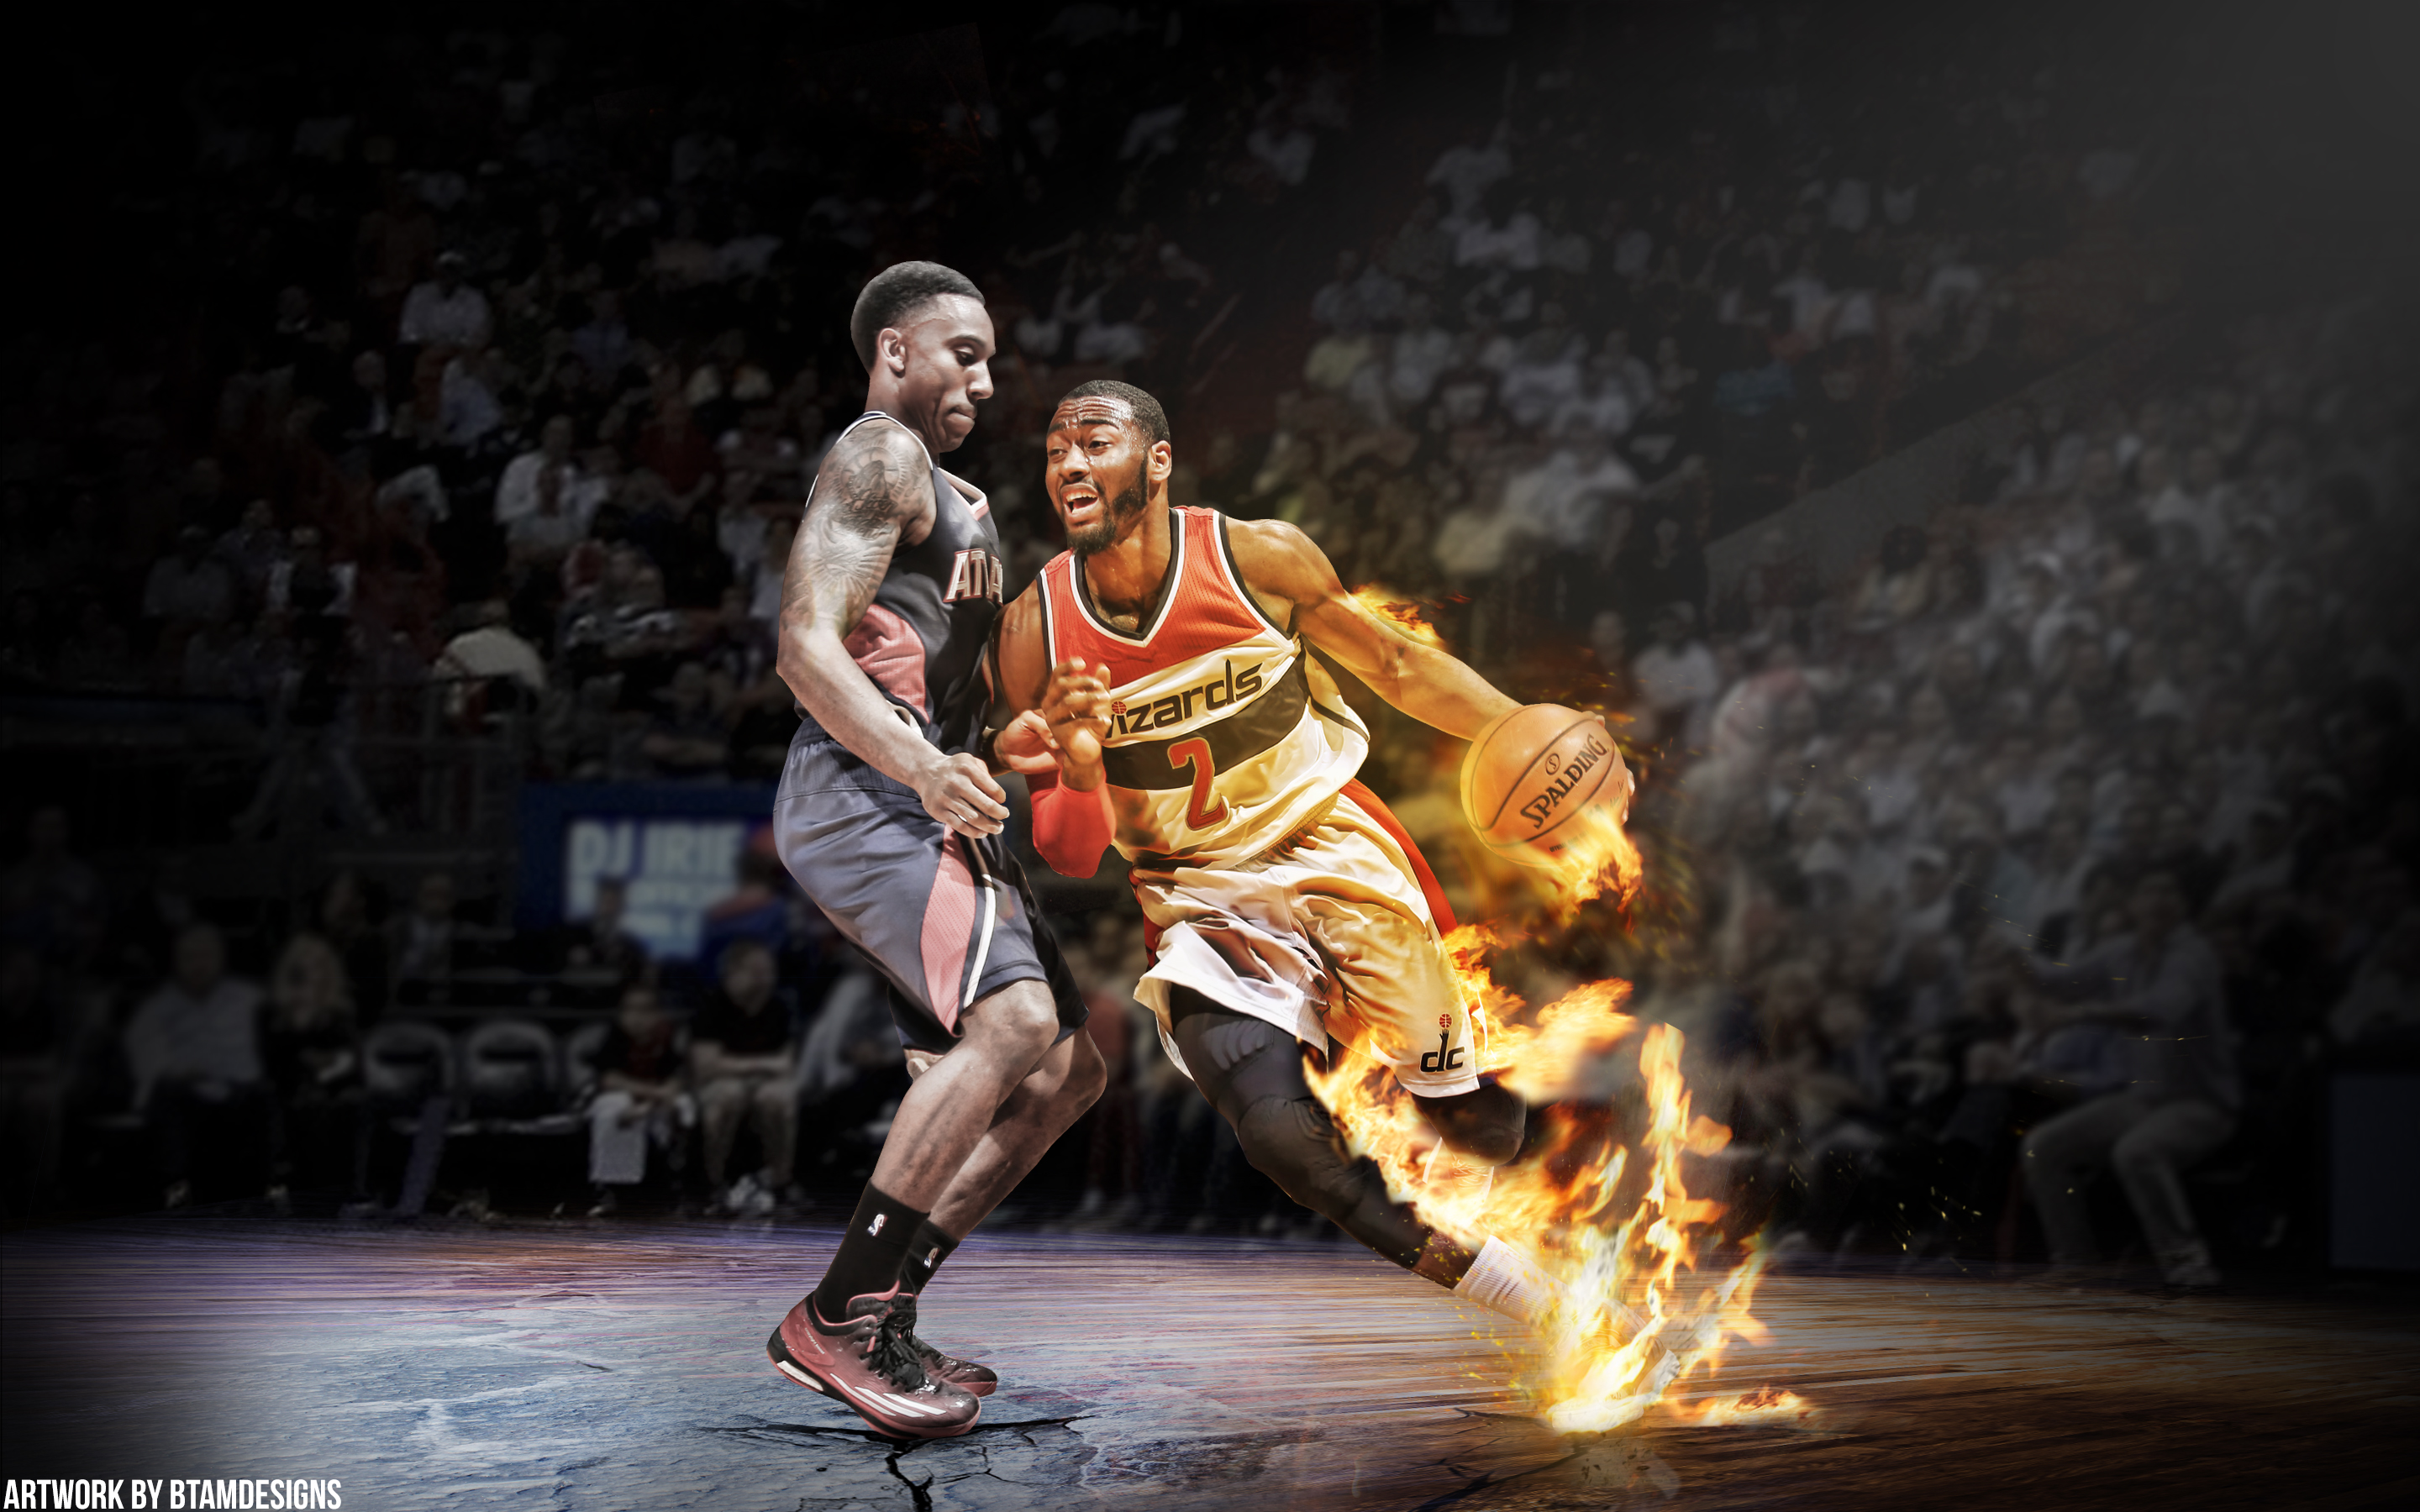 Jeff Teague And John Wall Fire Vs Ice Wallpaper By Btamdesigns